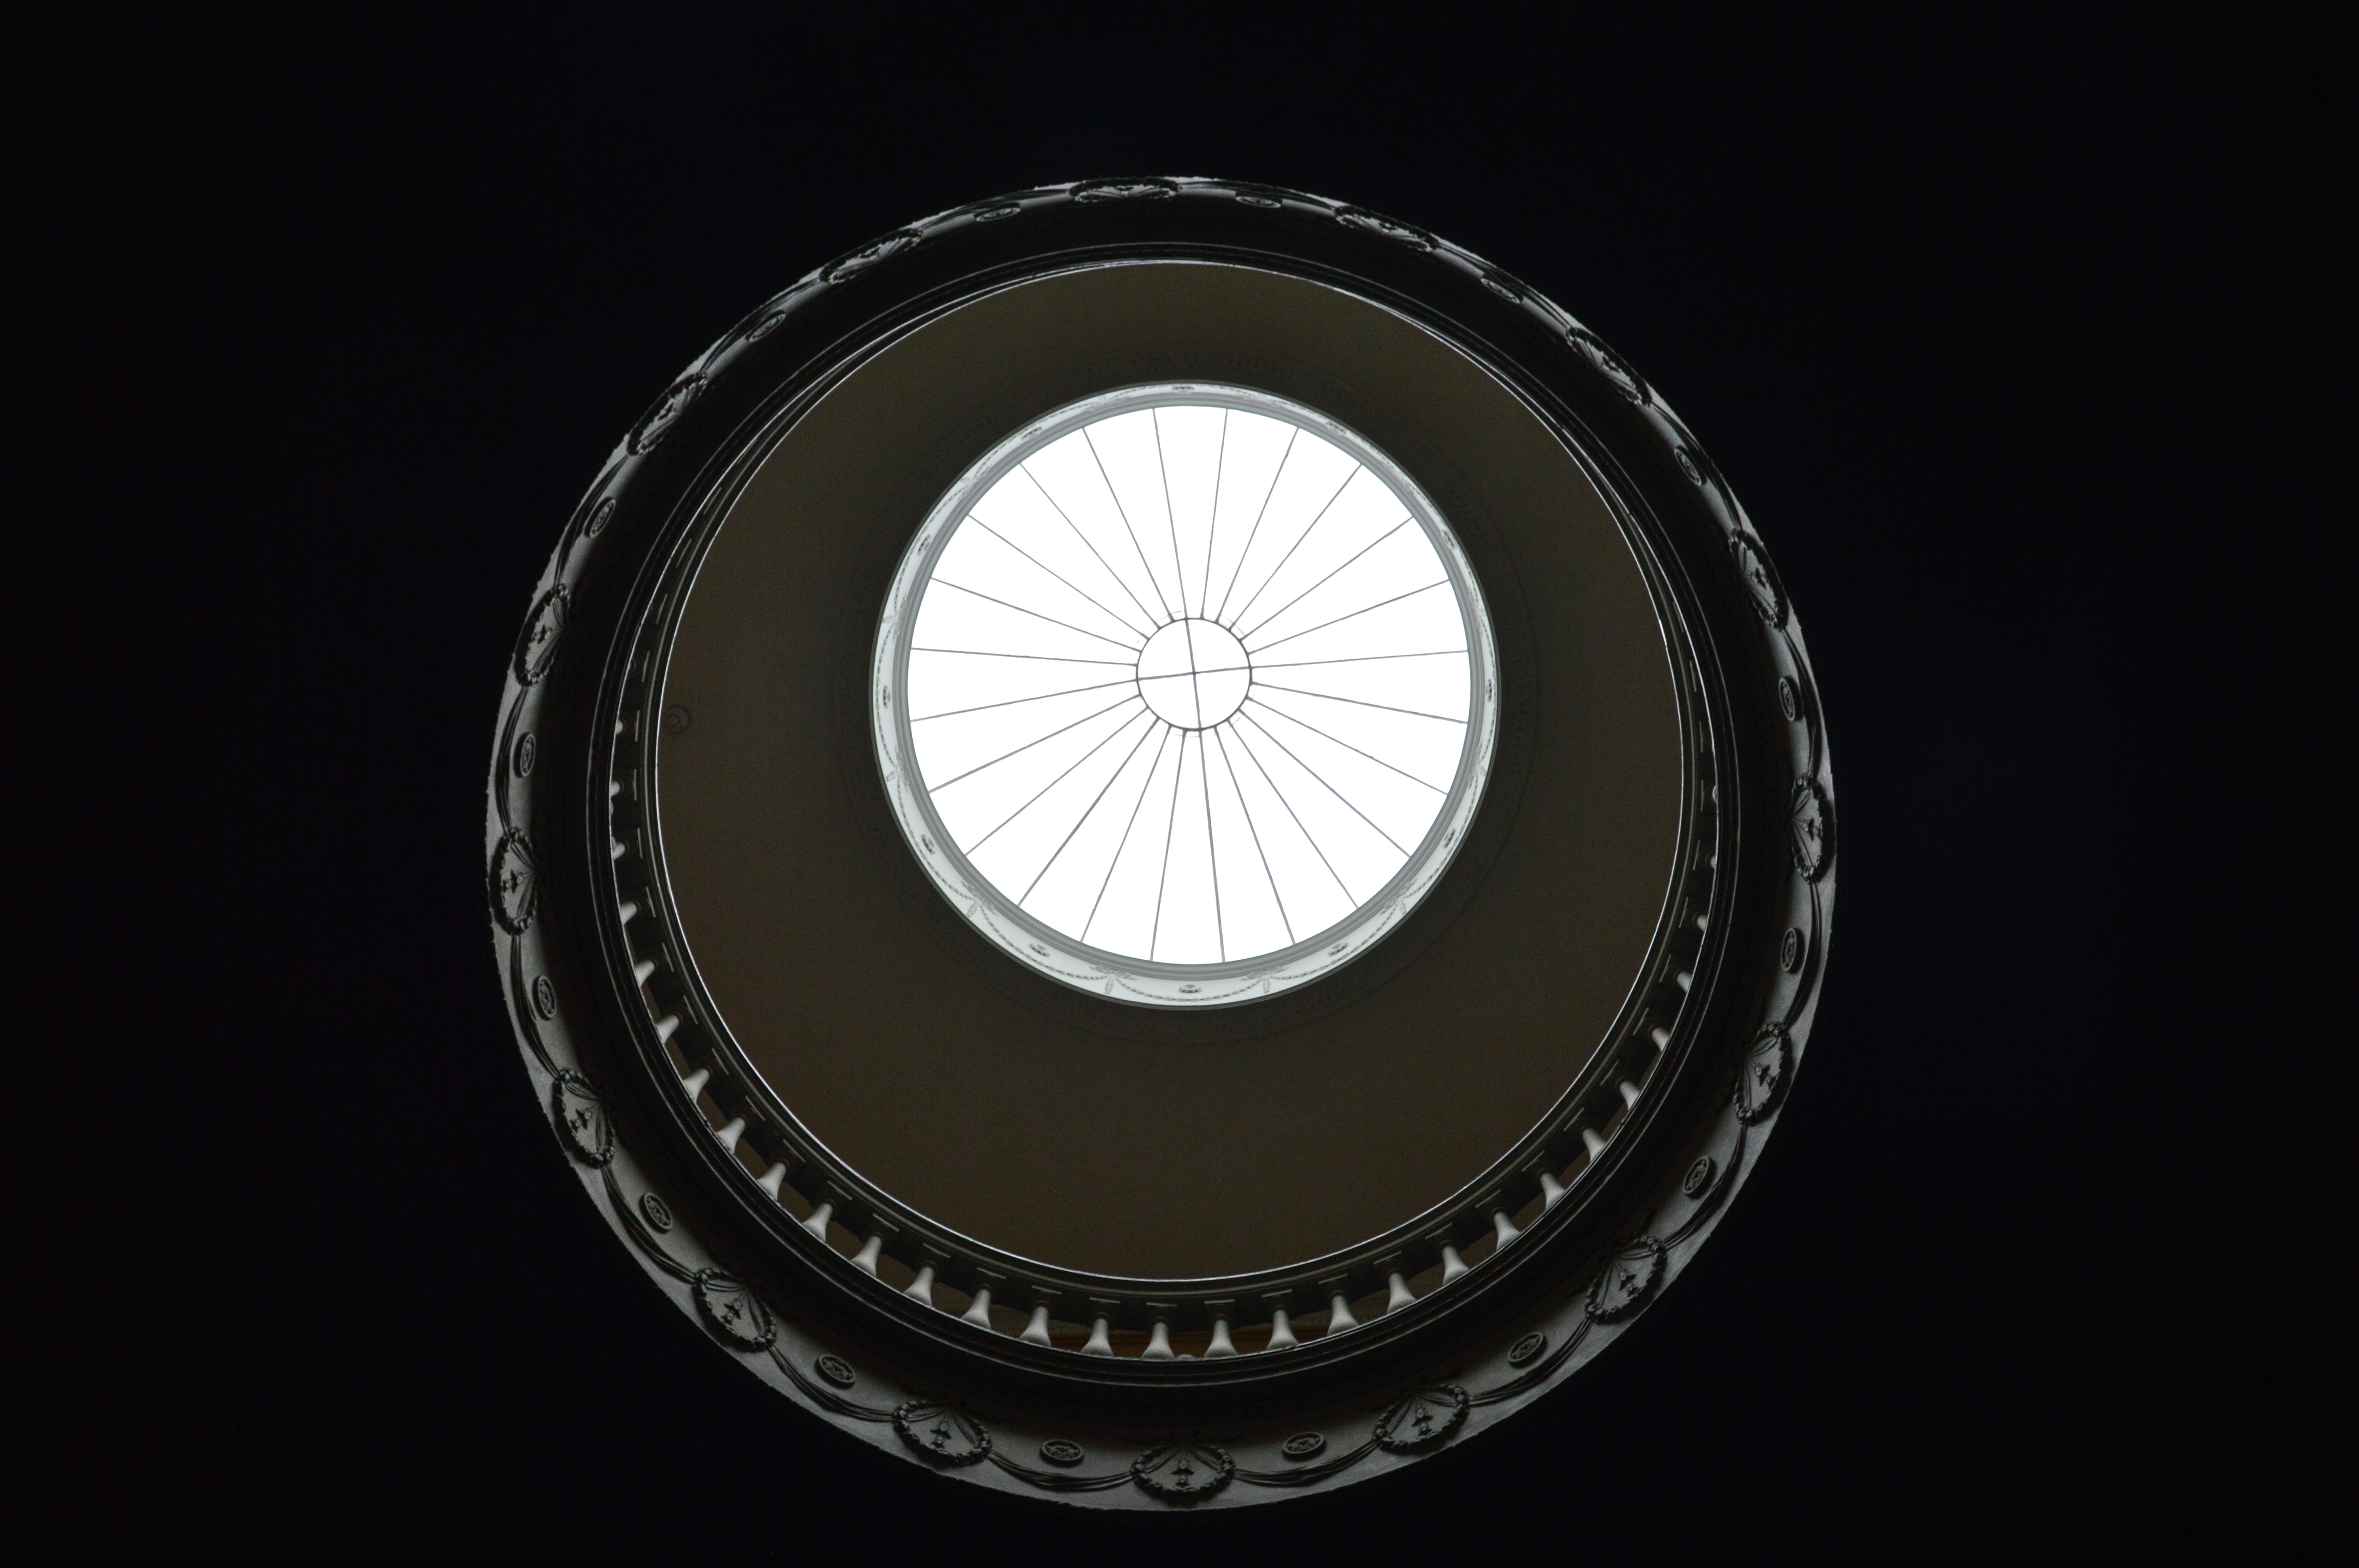 high angle view photography of dome ceiling window during day time